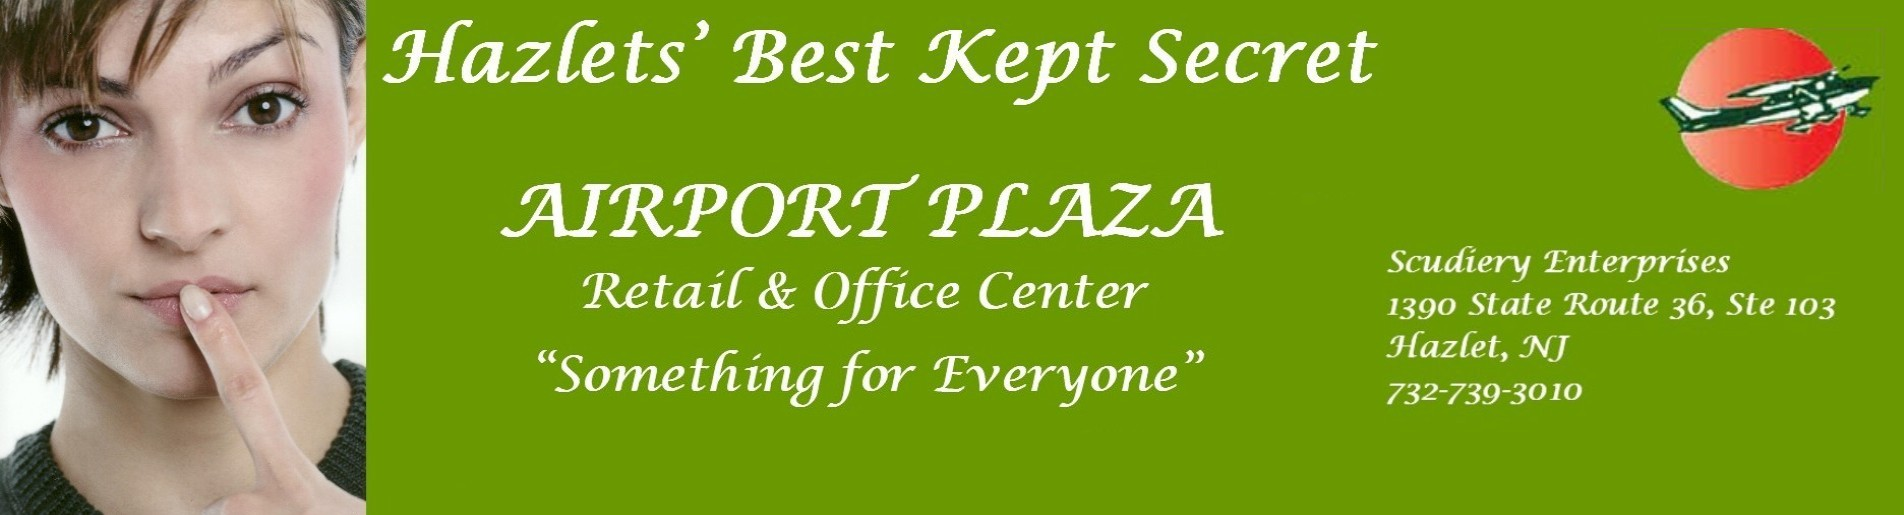 http://airportplazashopping.com/wp-content/themes/Directory/images/slide2.jpg